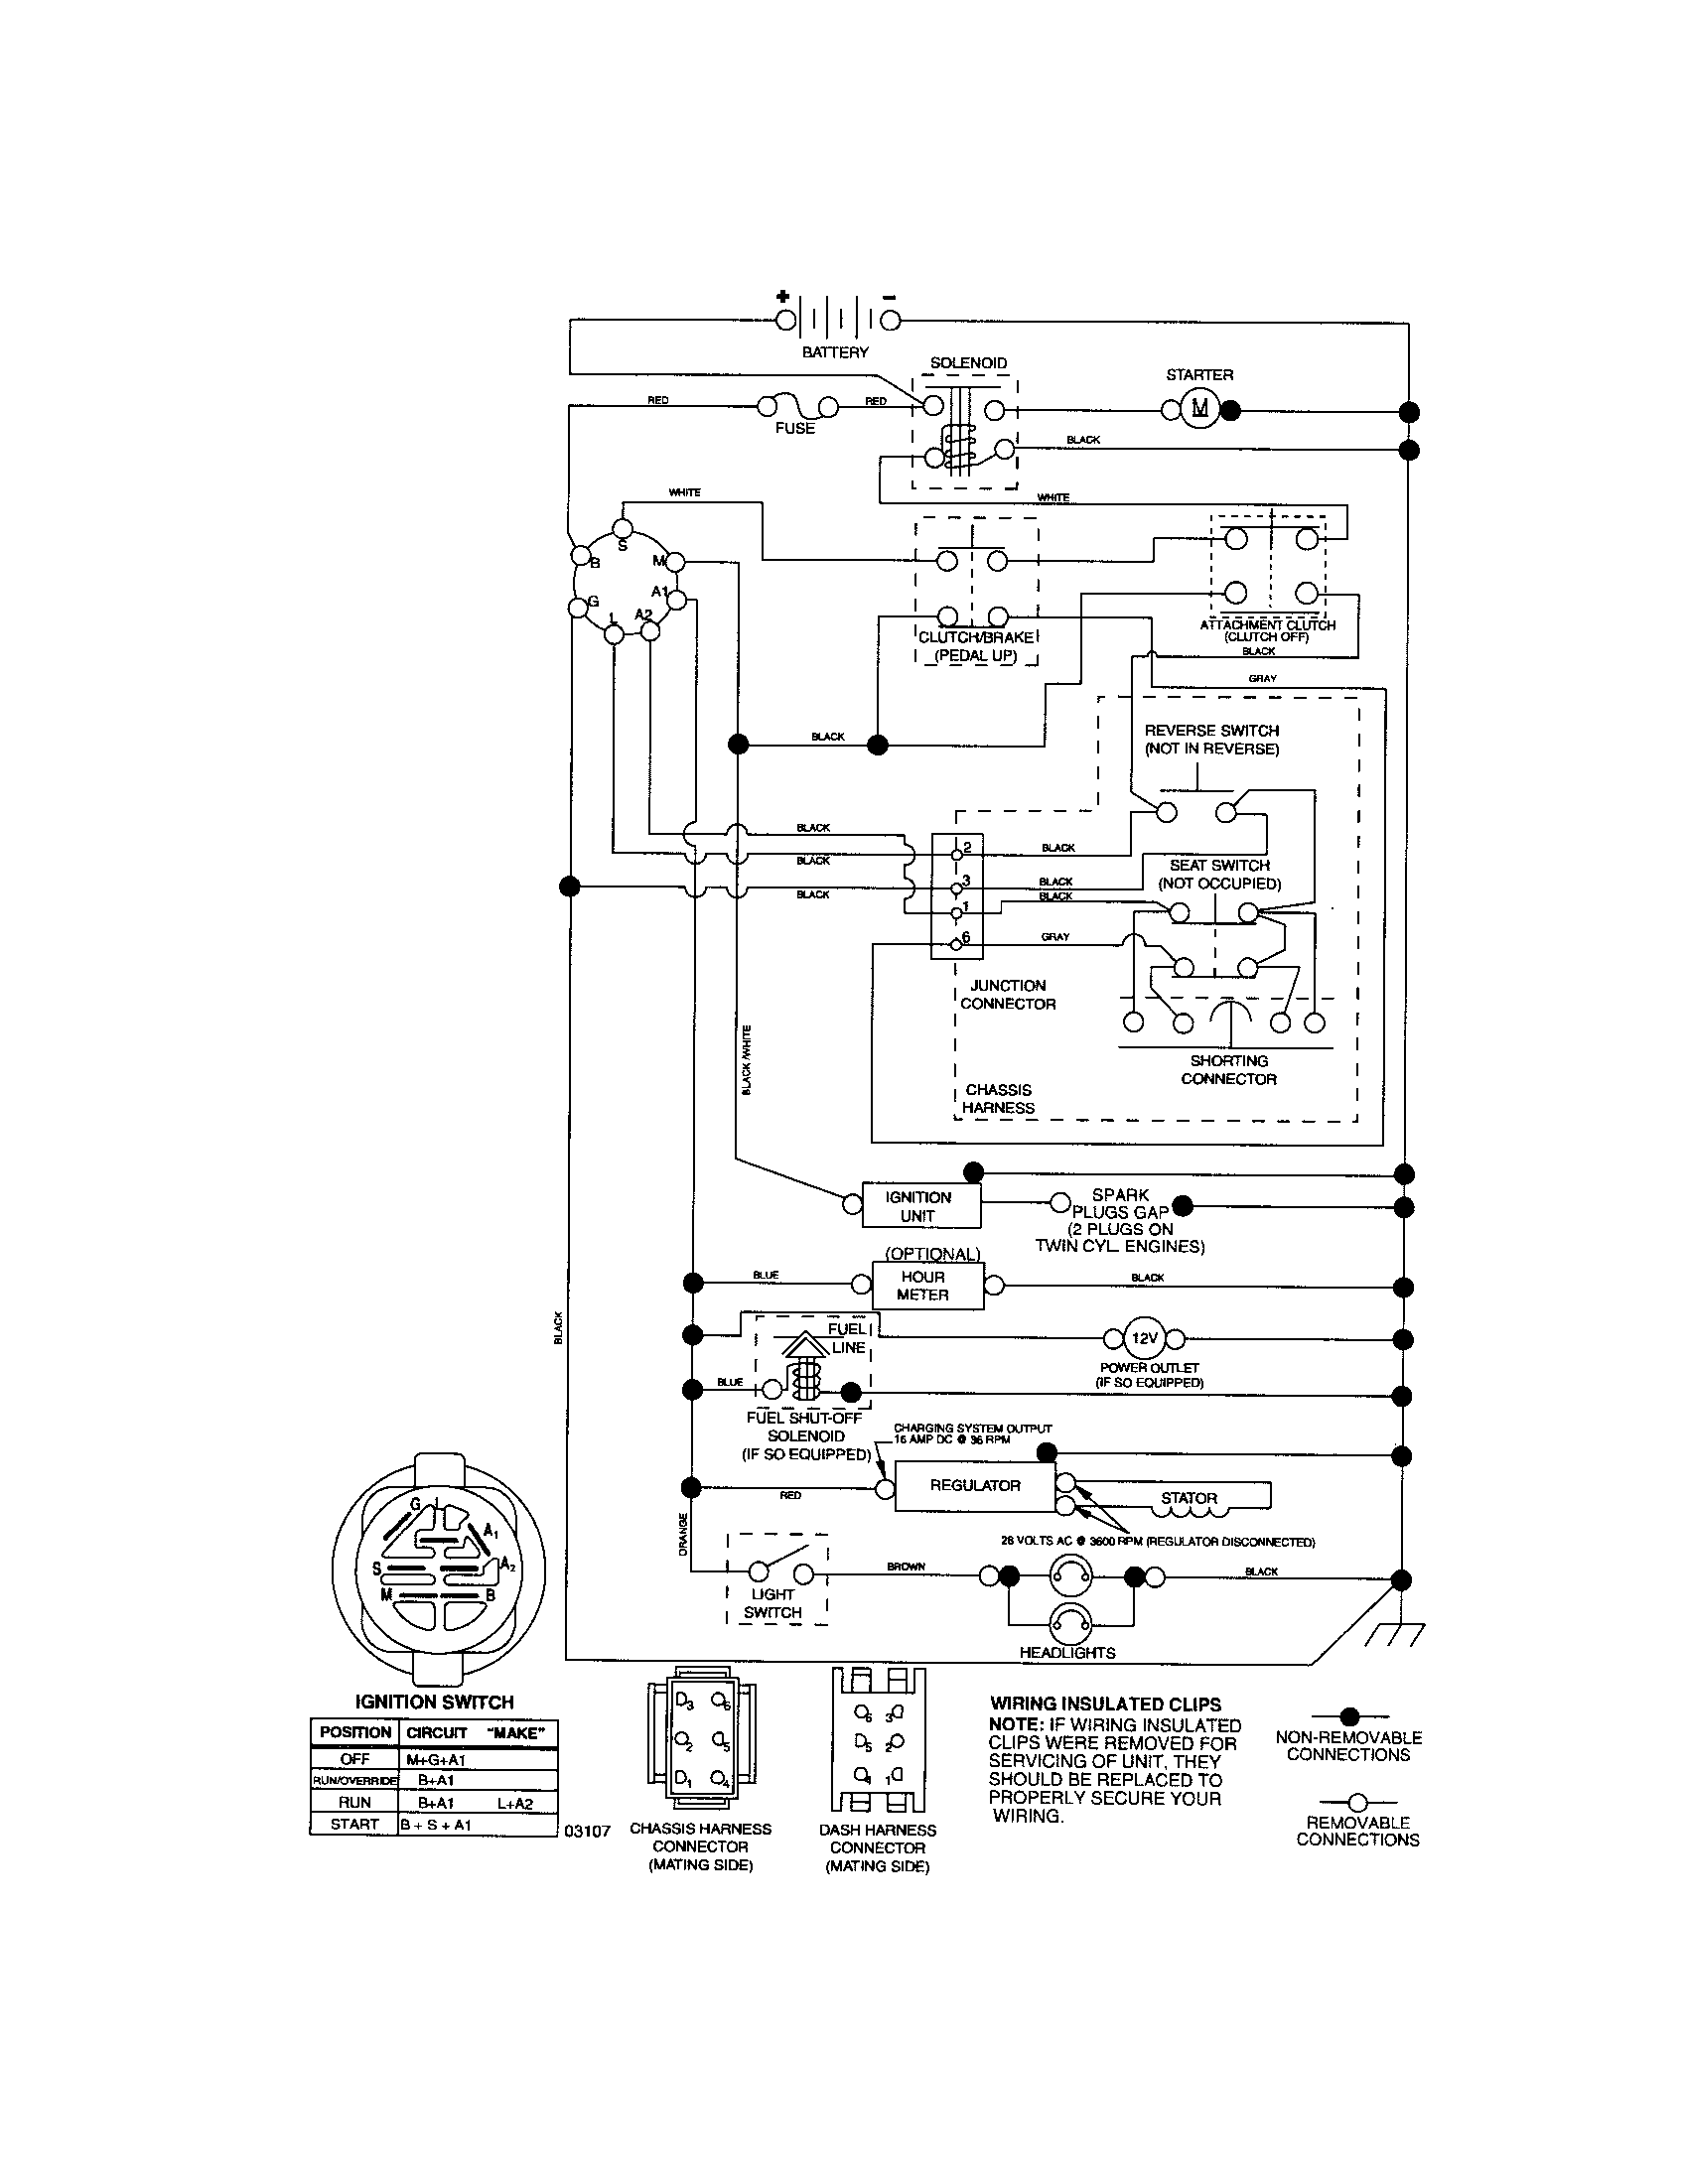 6af5f1447fd13c8443376822ddc1e105 craftsman riding mower electrical diagram wiring diagram  at alyssarenee.co